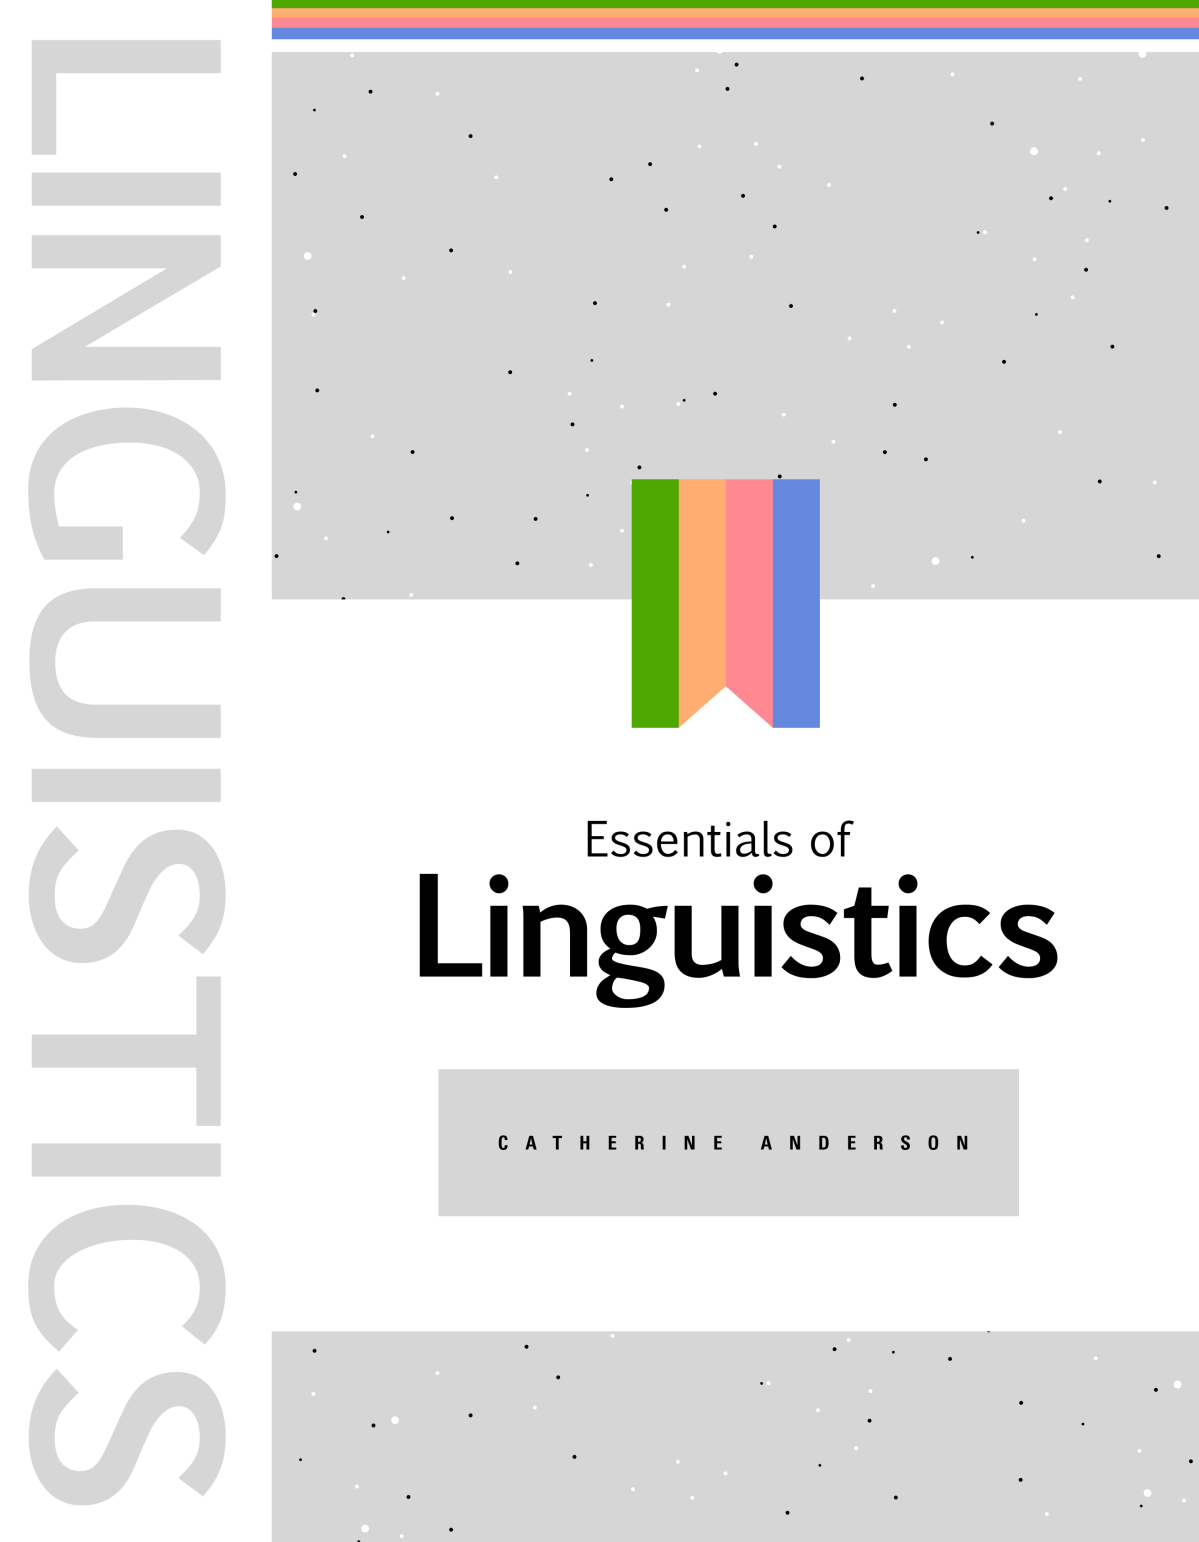 Open Access Materials for Intro Linguistics